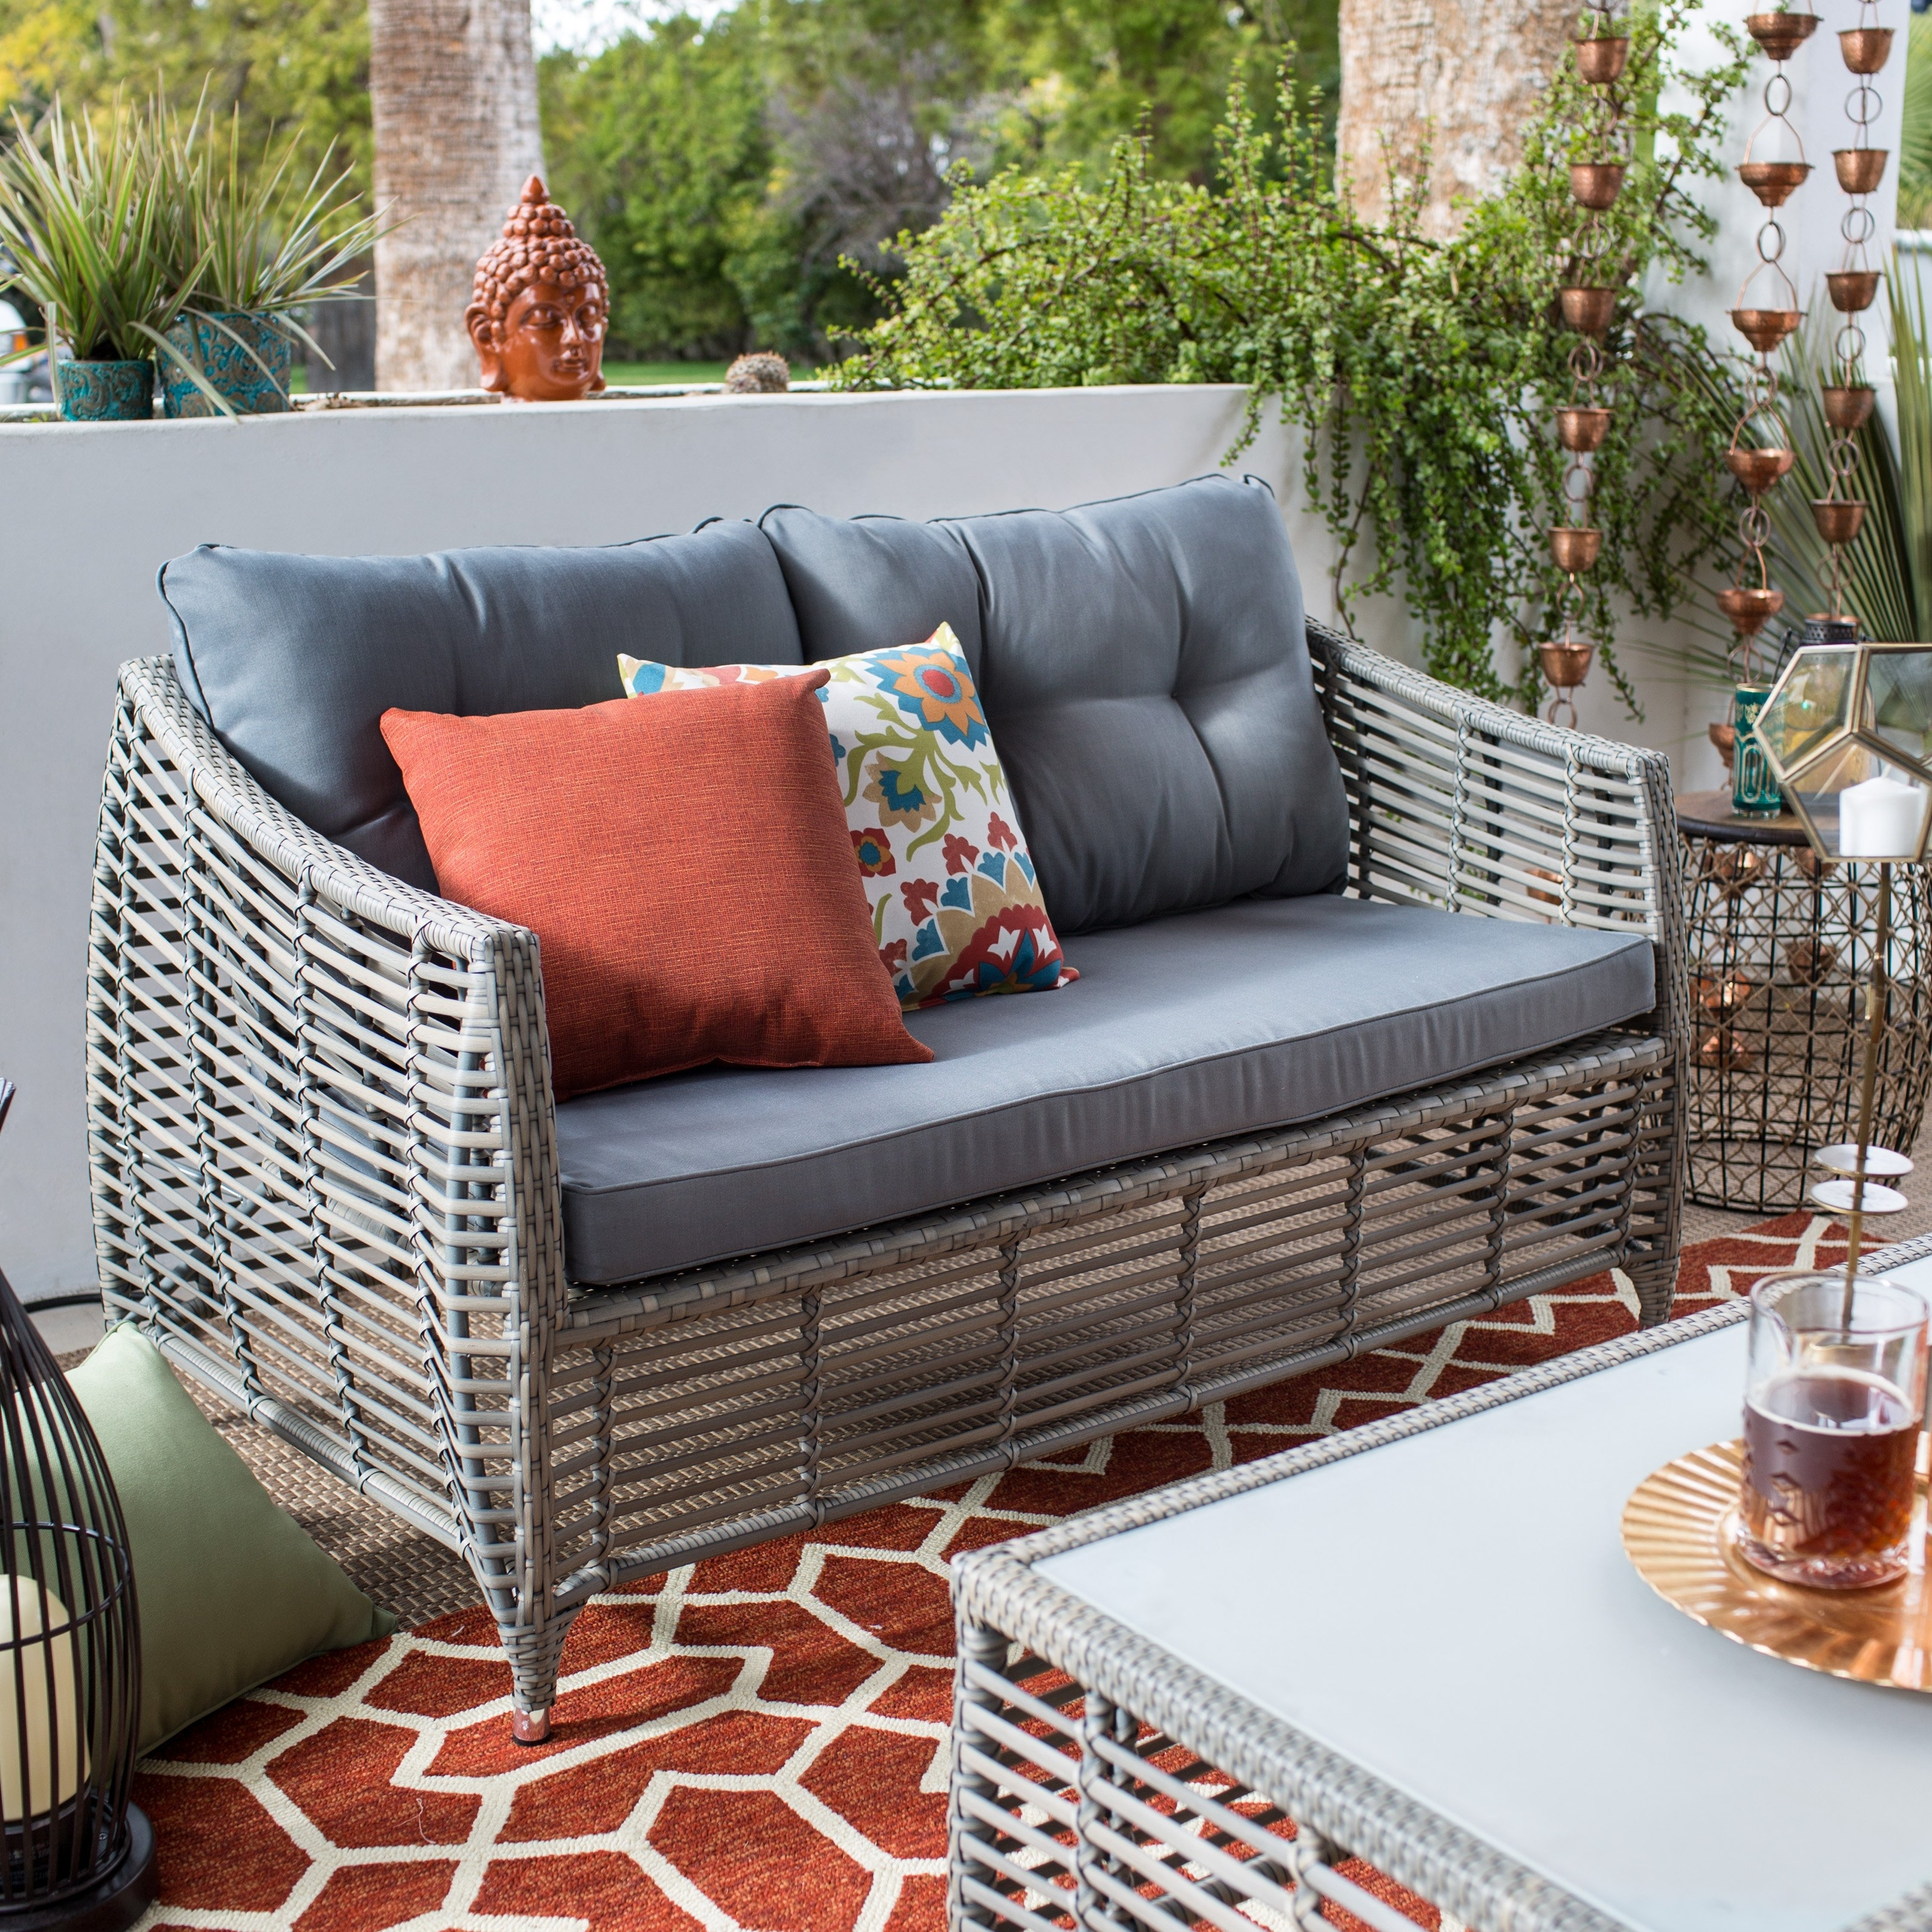 Patio Conversation Sets With Storage In Popular Outdoor Wicker Settee Cushions – Outdoor Designs (View 20 of 20)